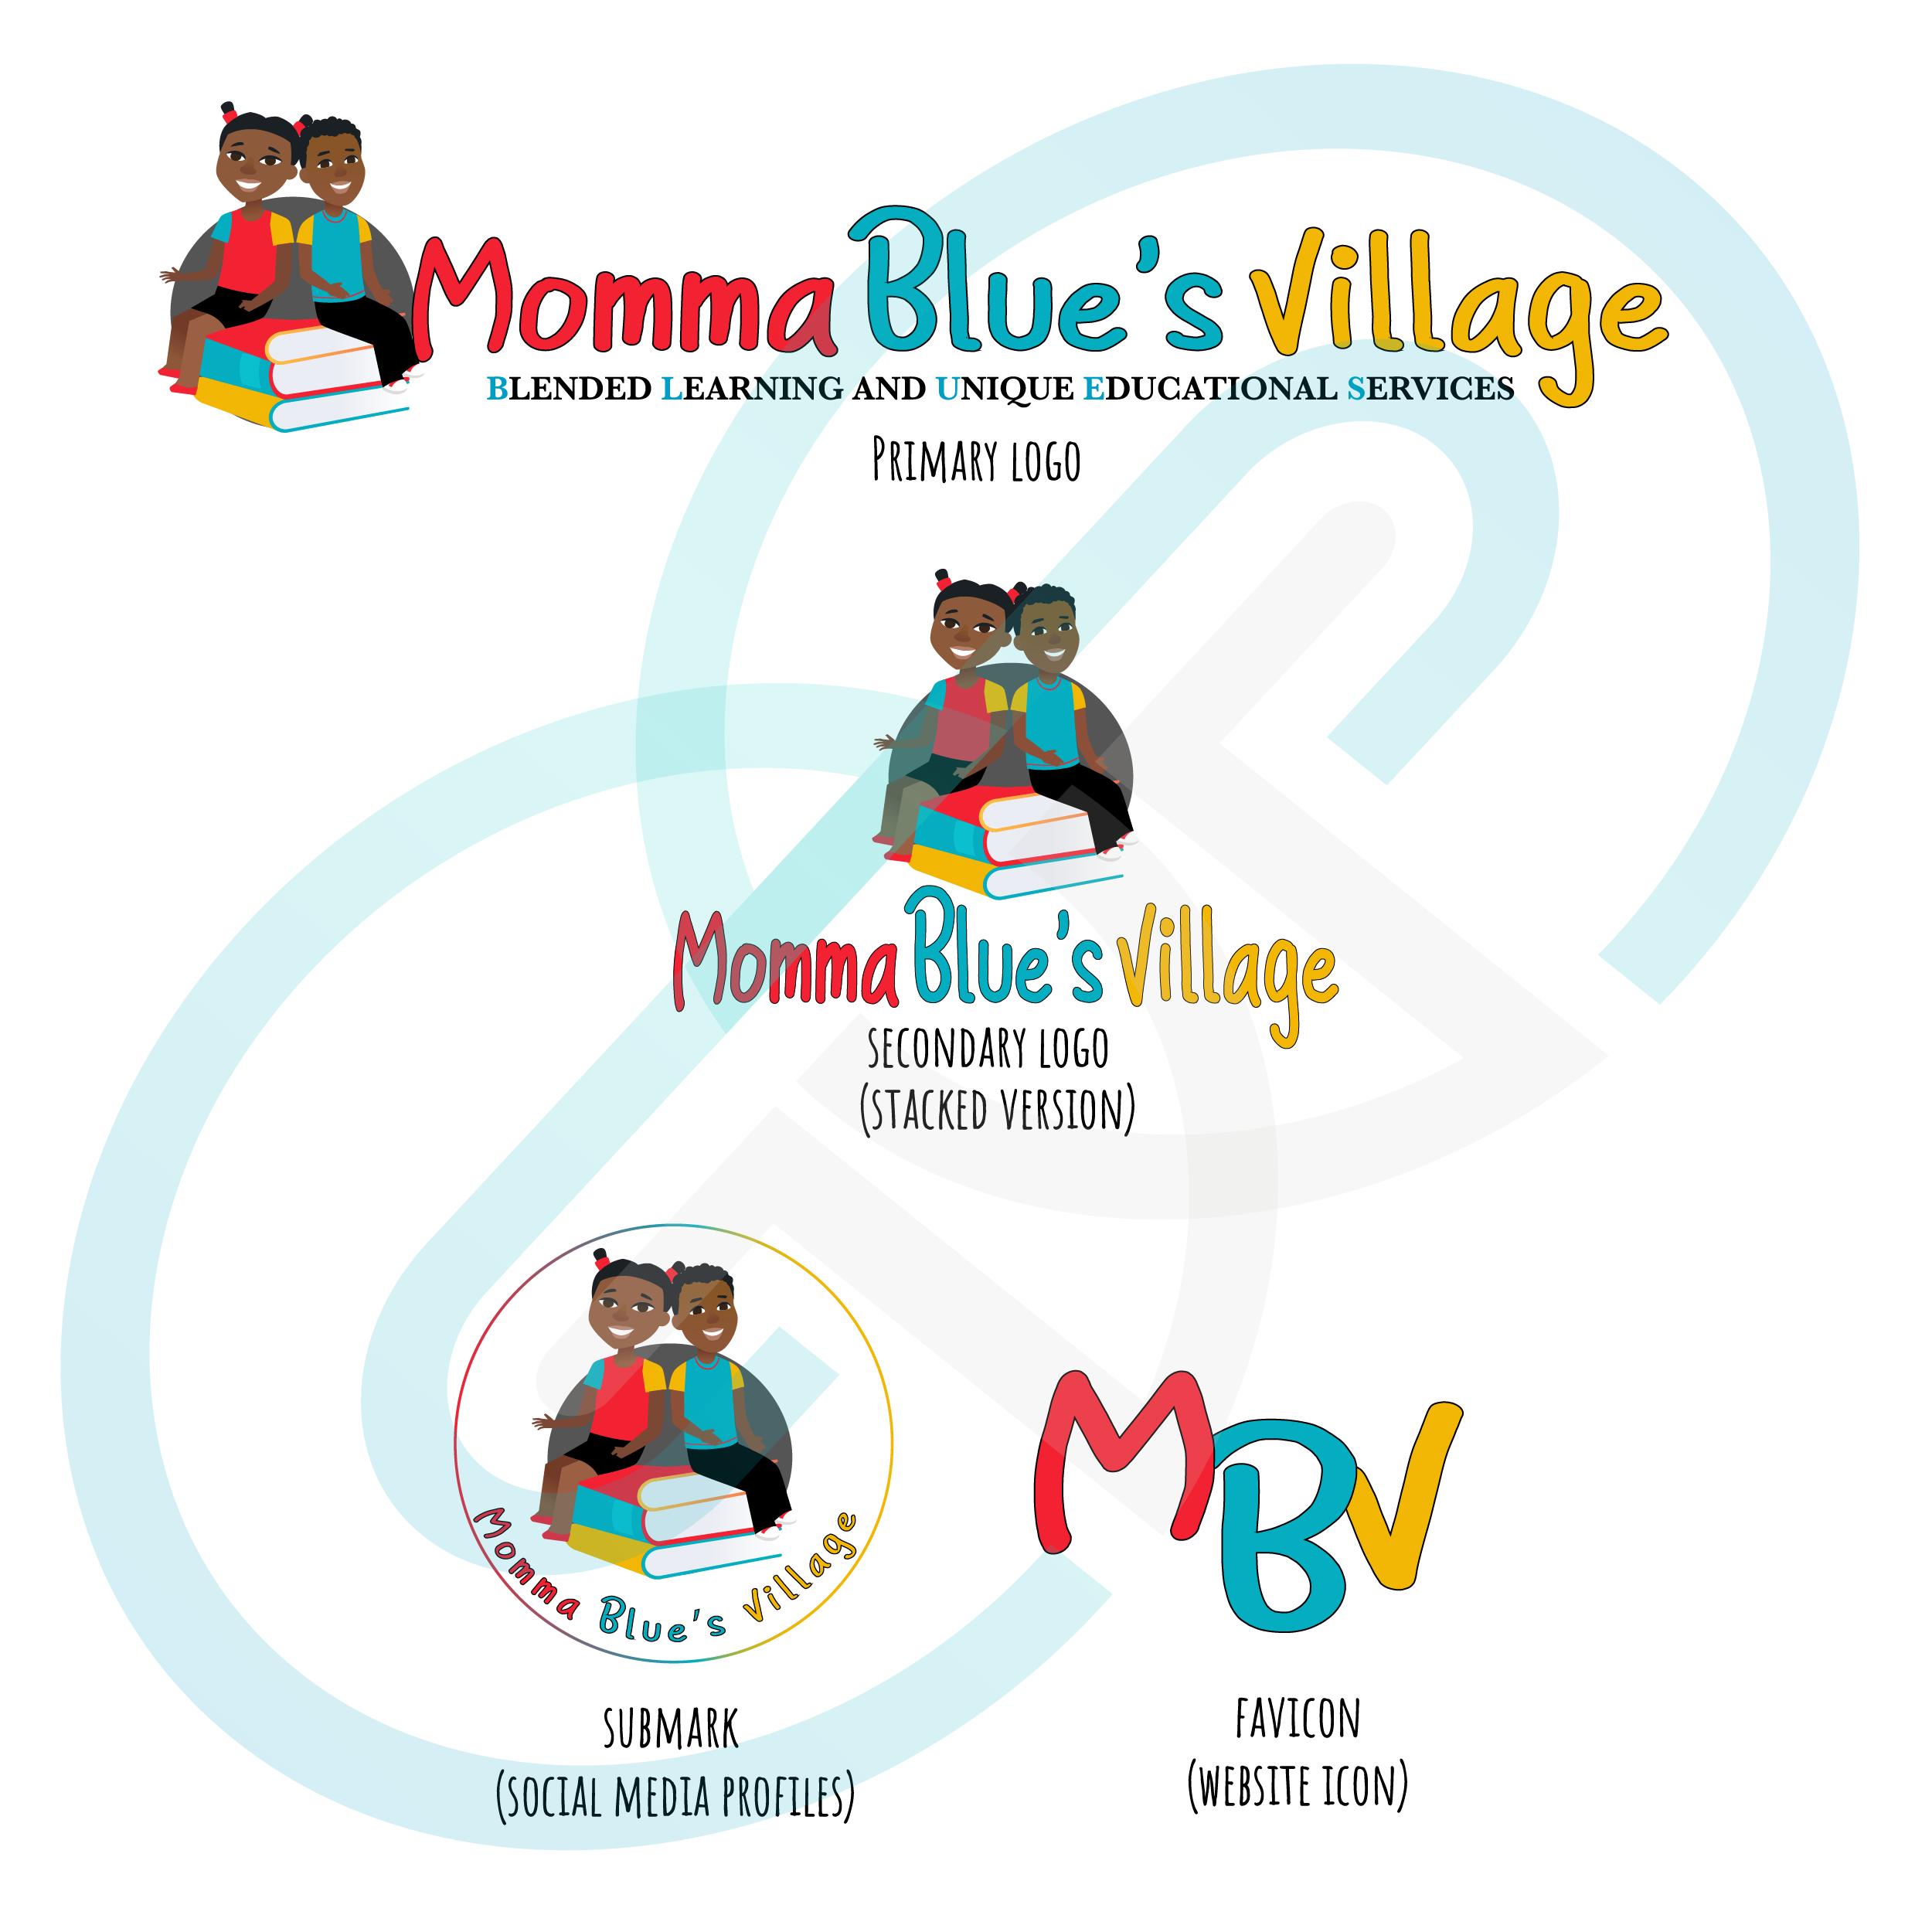 Momma Blue's Village logo design with different variations